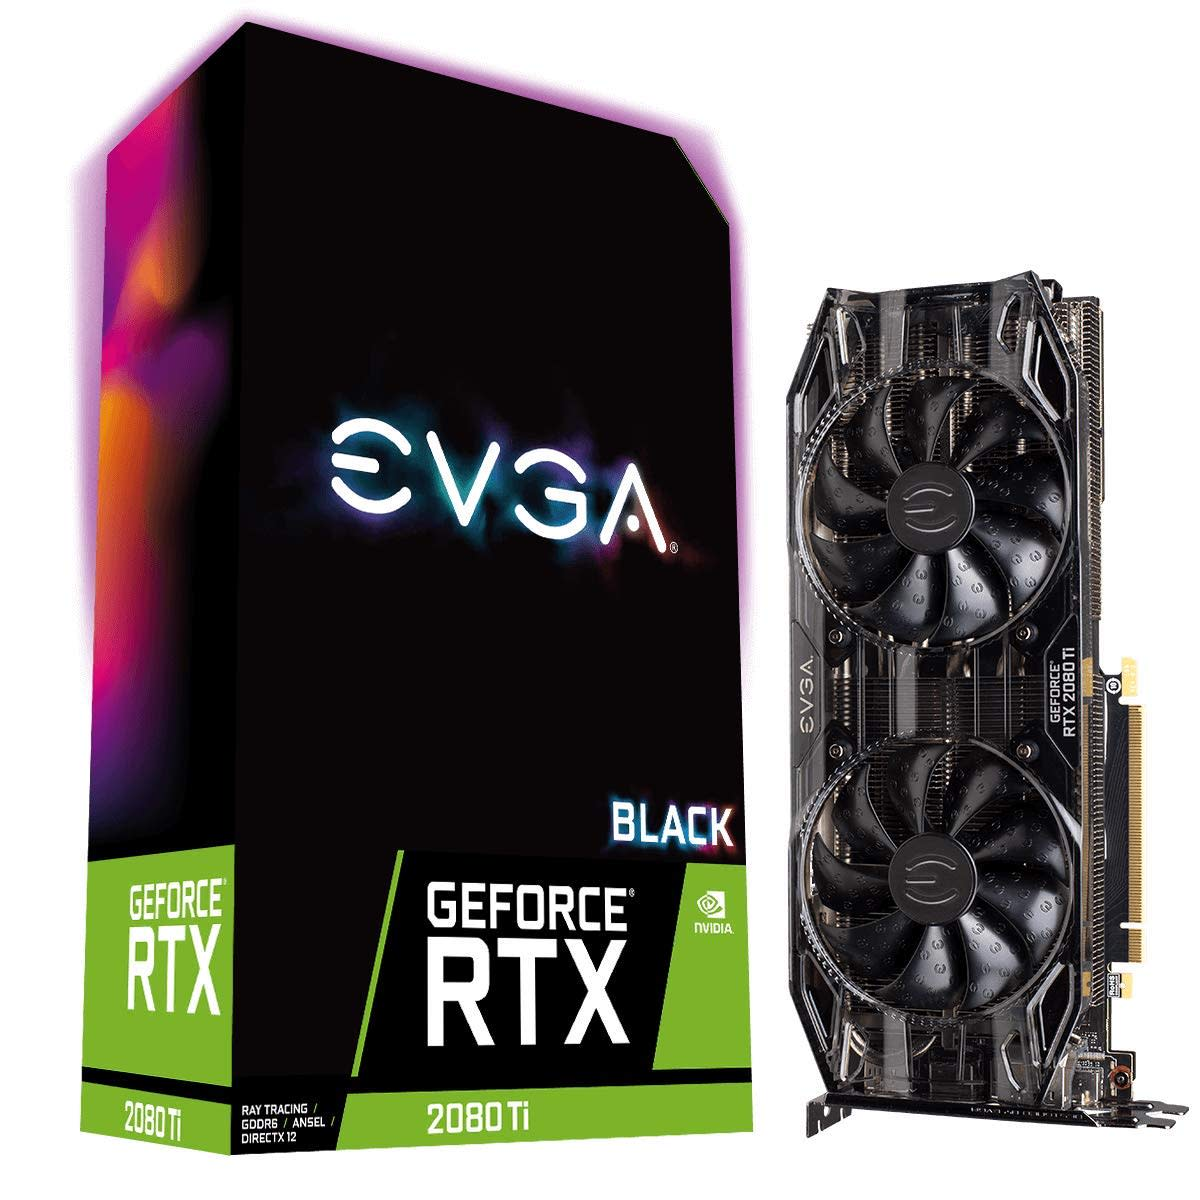 EVGA nVidia RTX 2080 Ti Black Edition Gaming Graphics Card Review and Benchmarks